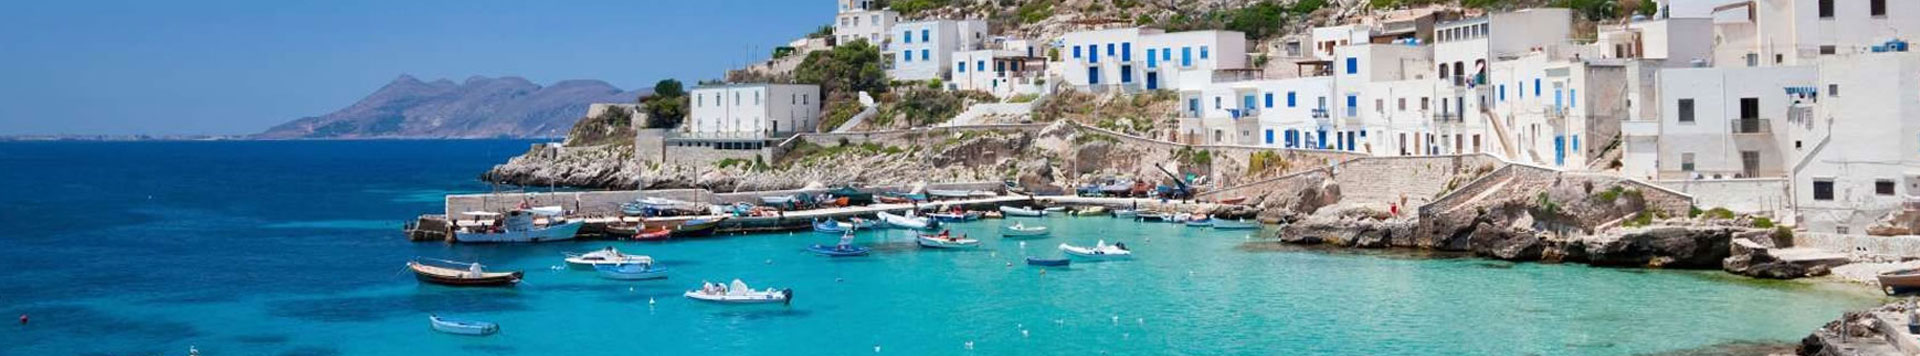 vacanza isole eolie